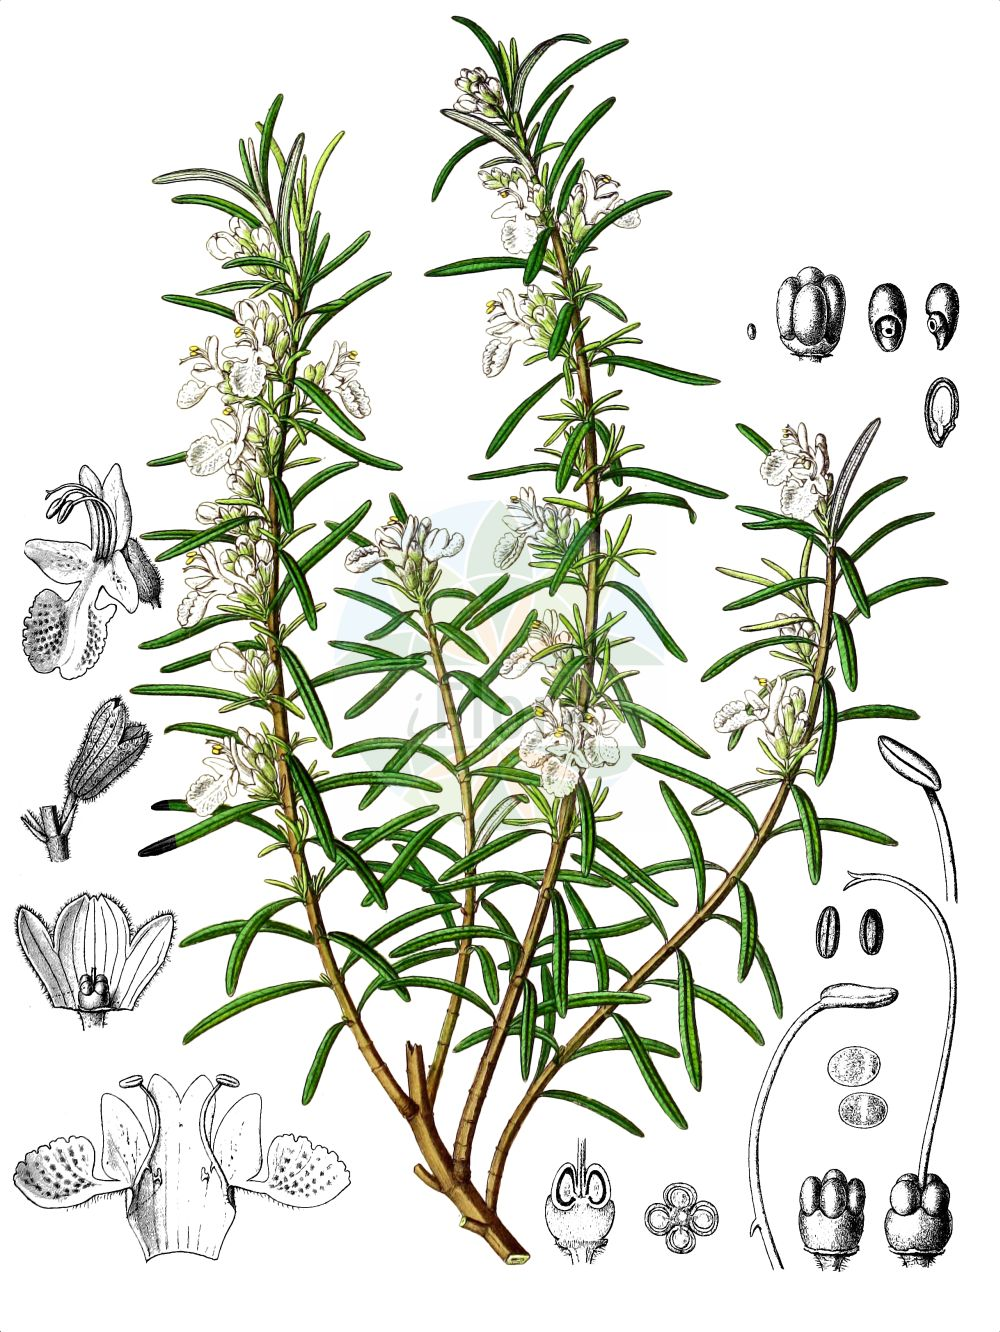 Historische Abbildung von Rosmarinus officinalis (Echter Rosmarin - Rosemary). Das Bild zeigt Blatt, Bluete, Frucht und Same. ---- Historical Drawing of Rosmarinus officinalis (Echter Rosmarin - Rosemary).The image is showing leaf, flower, fruit and seed.(Rosmarinus officinalis,Echter Rosmarin,Rosemary,Rosmarinus officinalis,Rosmarinus officinalis subsp. laxiflorus,Echter Rosmarin,Rosmarin,Rosemary,Garden Rosemary,Moorwort,Rosmarinus,Rosmarin,Rosemary,Lamiaceae,Lippenbluetengewaechse,Lippenbluetler,Nettle family,Blatt,Bluete,Frucht,Same,leaf,flower,fruit,seed,Berg & Schmidt (1894-1896))